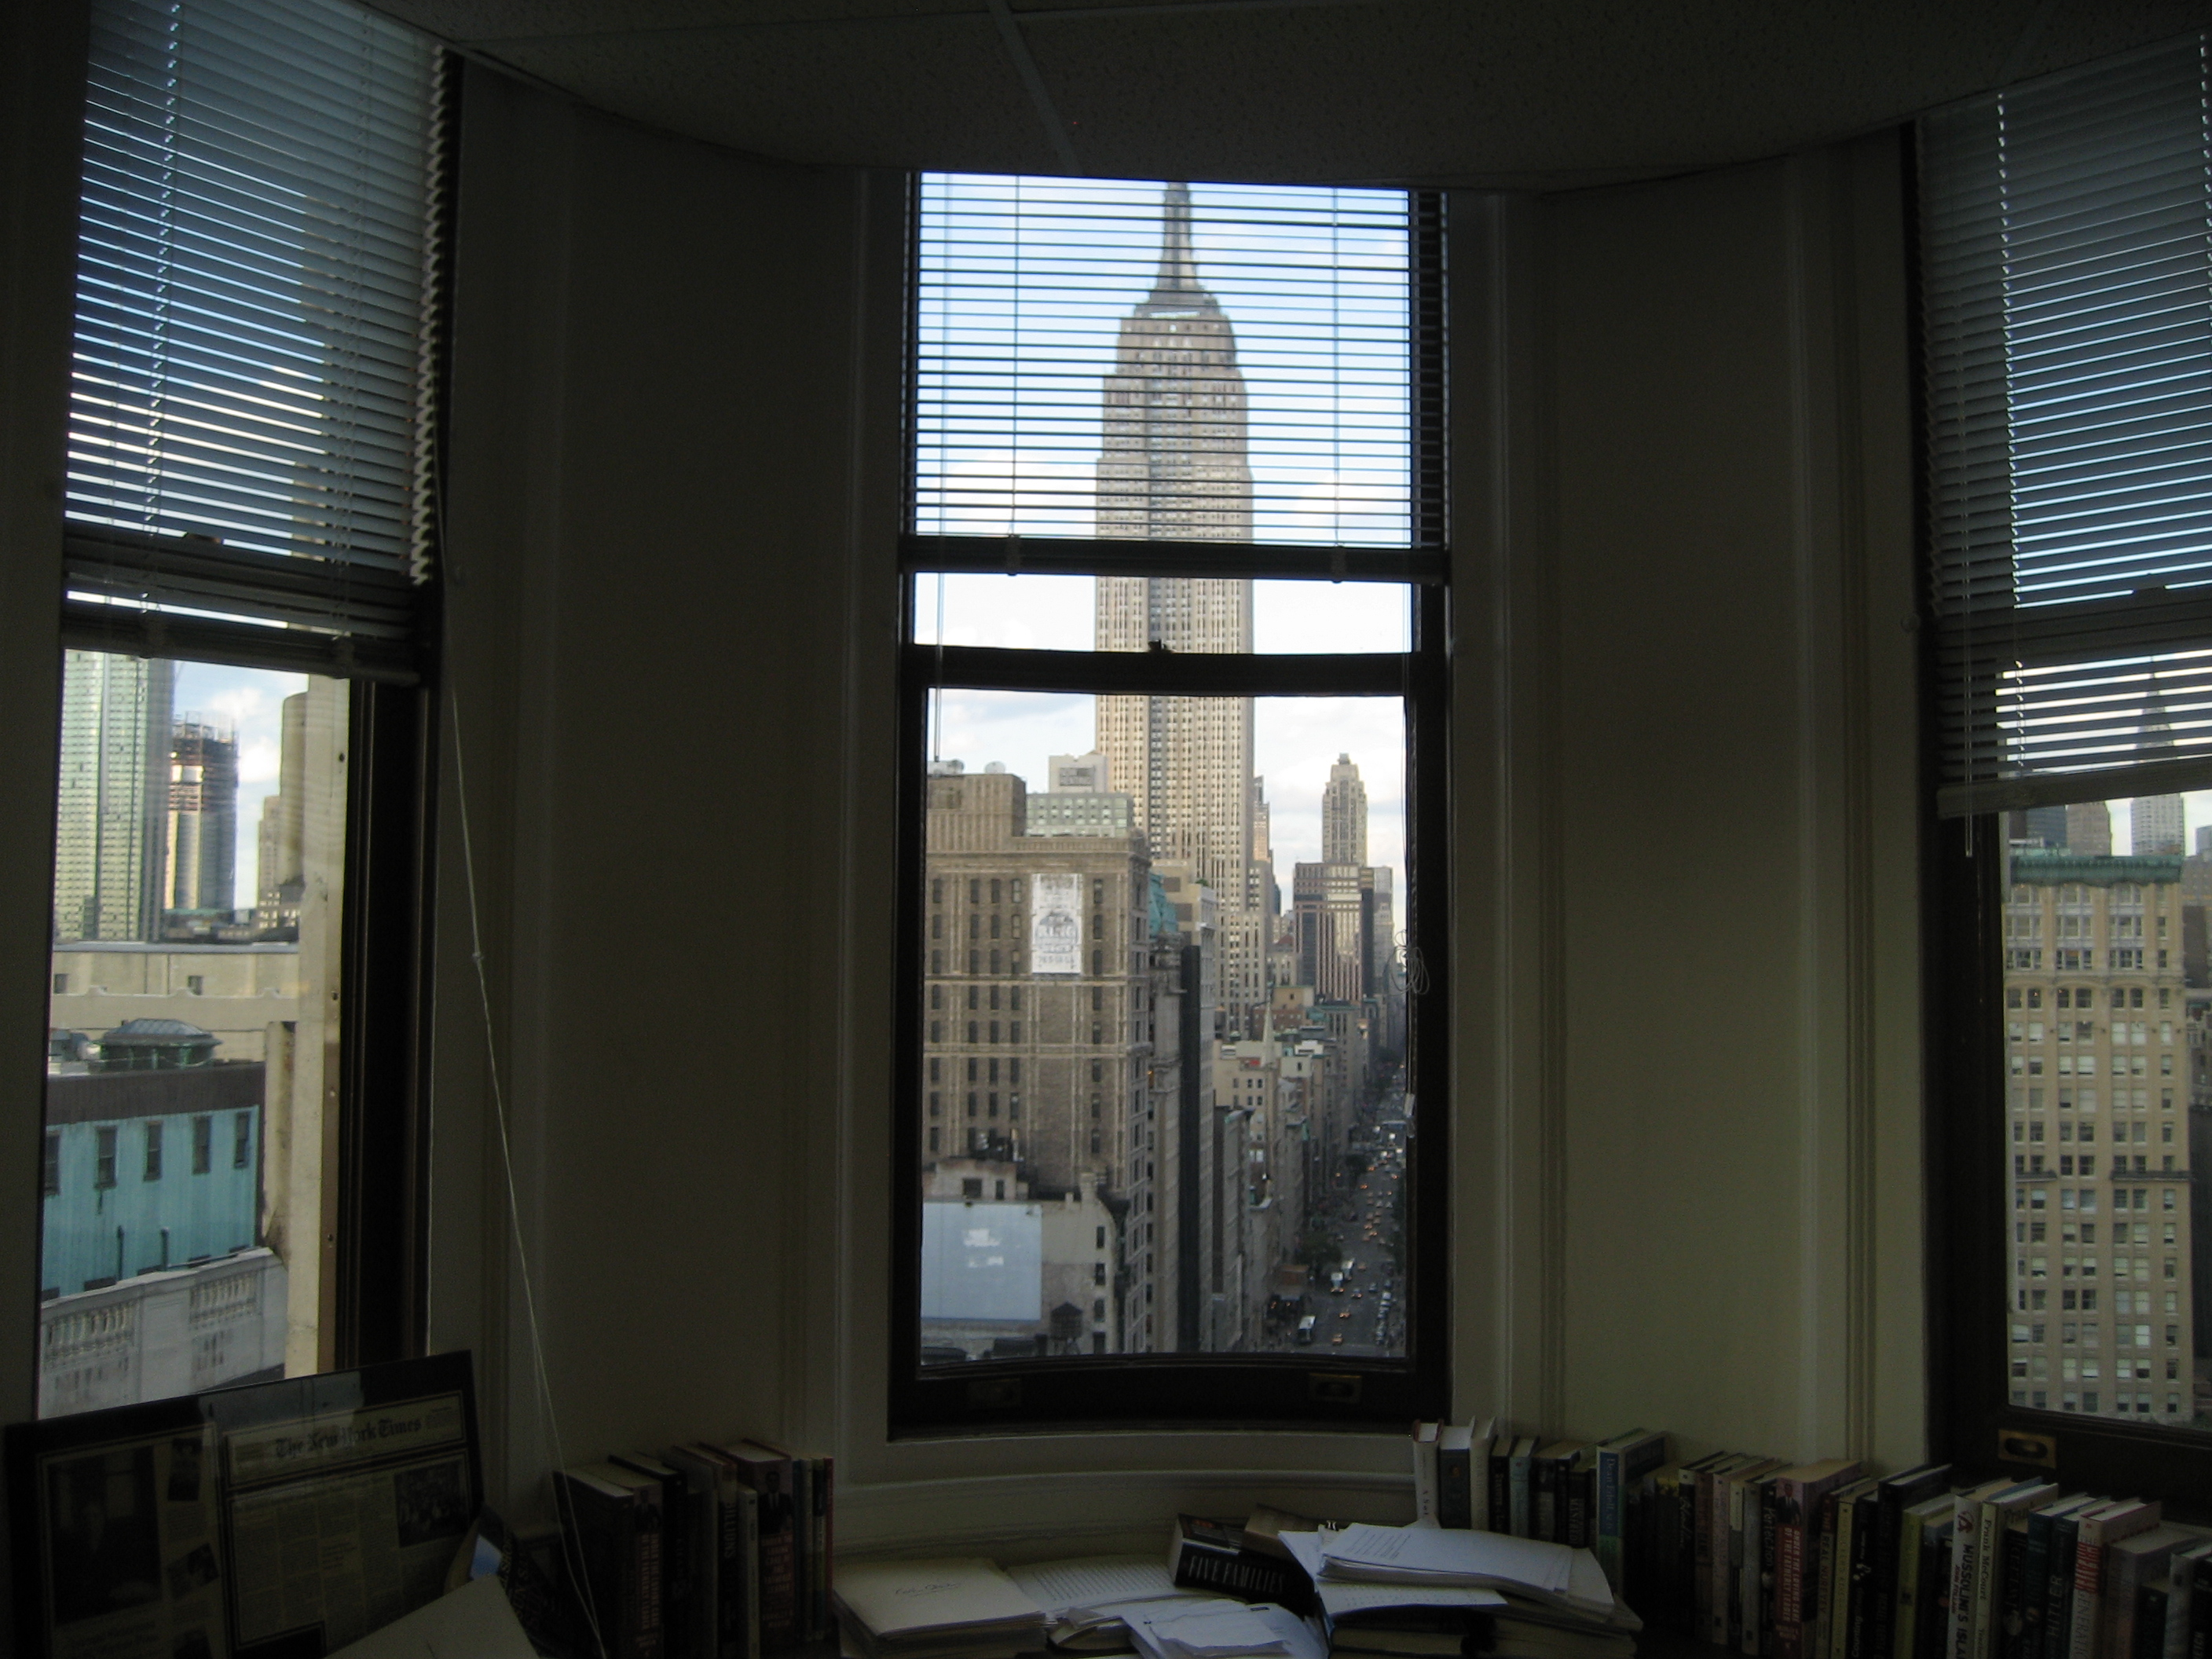 A view from one of the rooms in the building